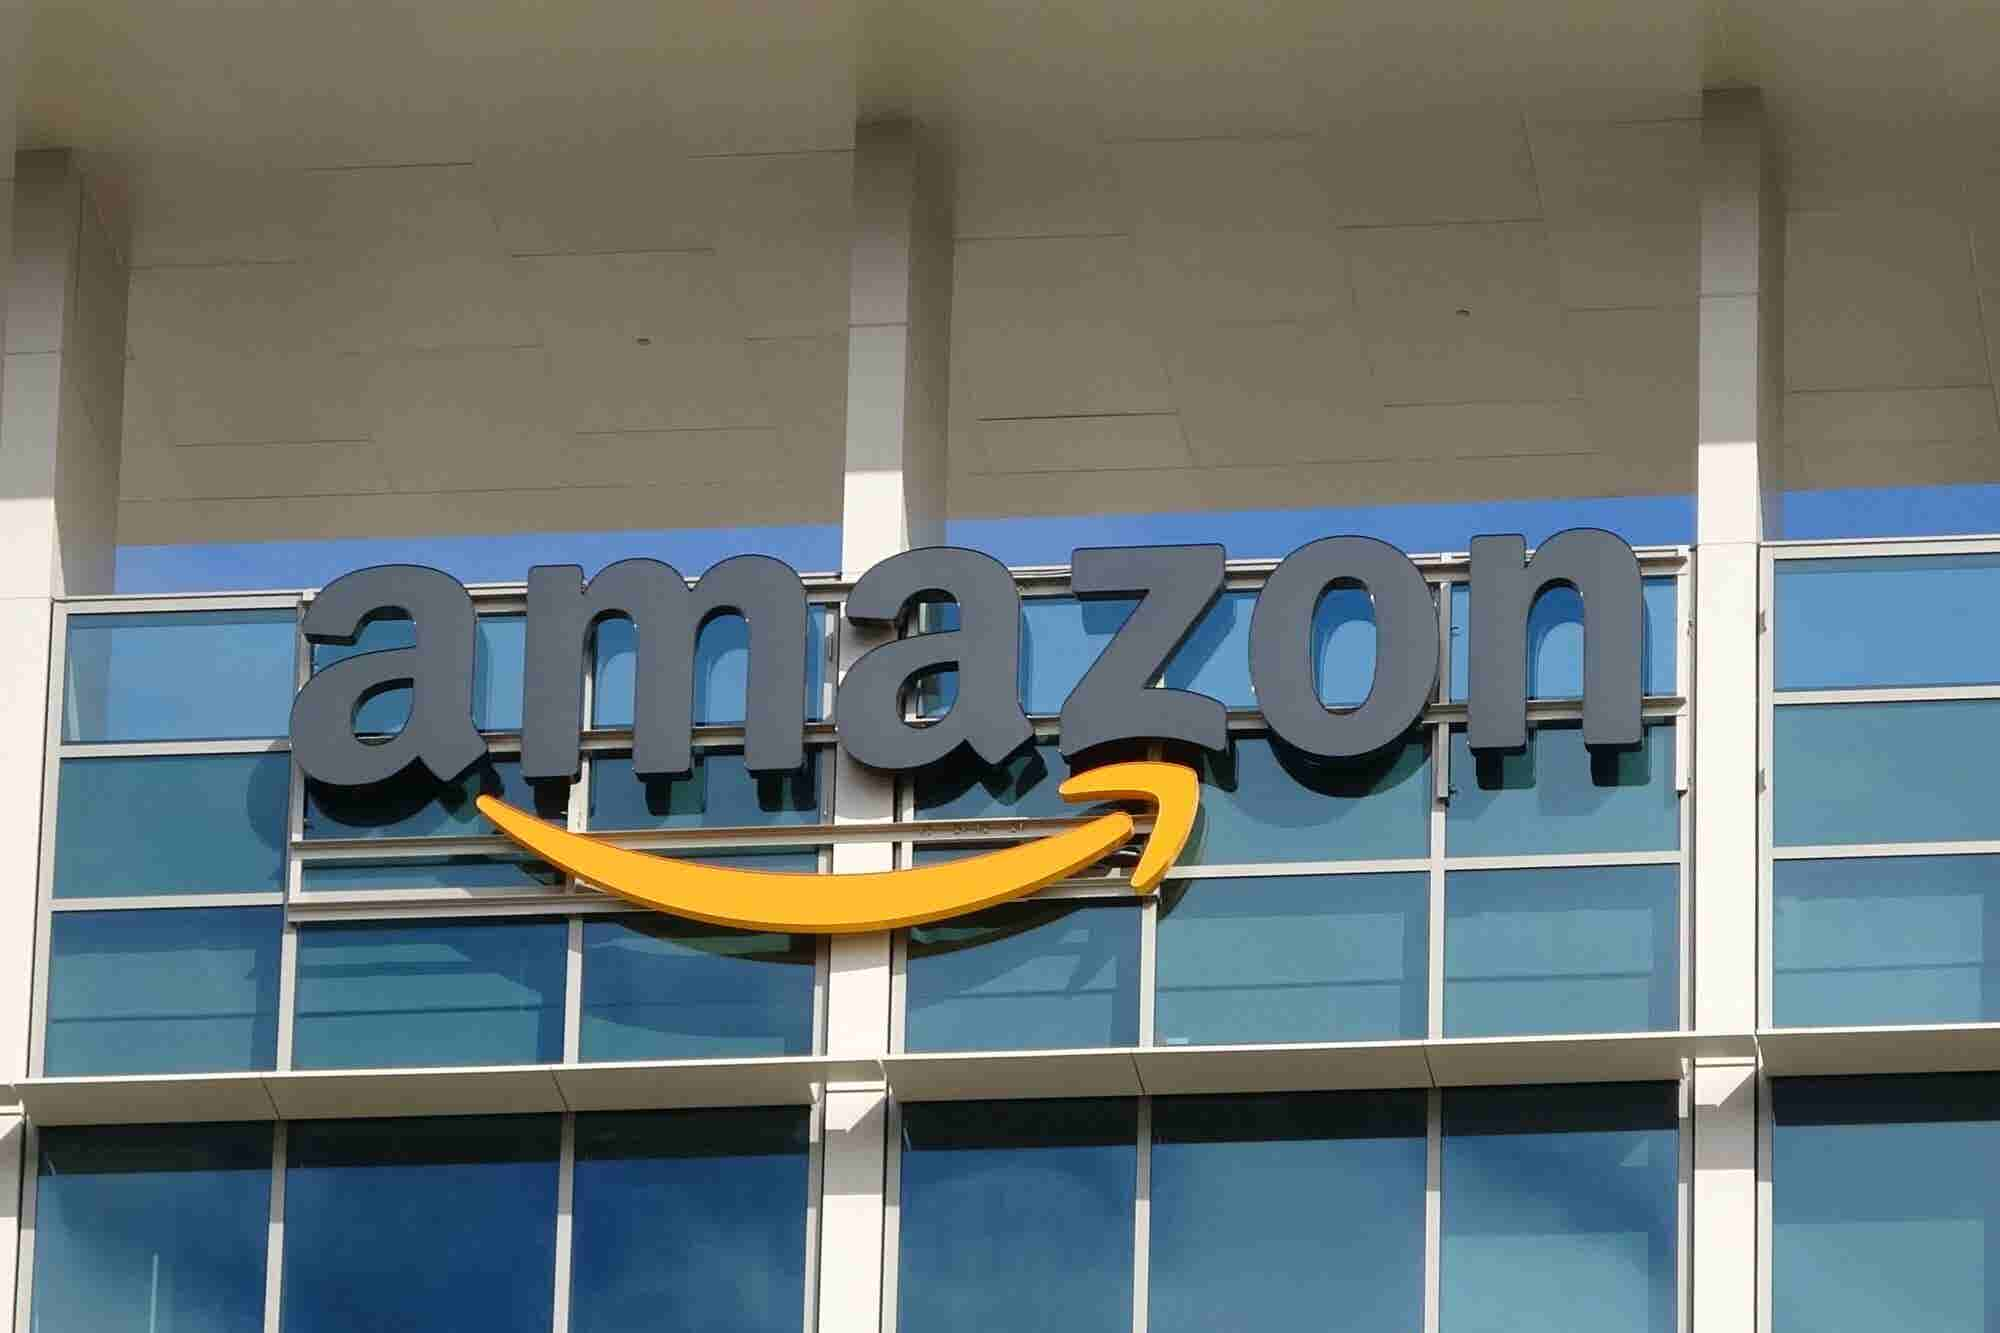 Read Amazon's Statement on Why It Is Pulling Out of Planned HQ2 in New York City